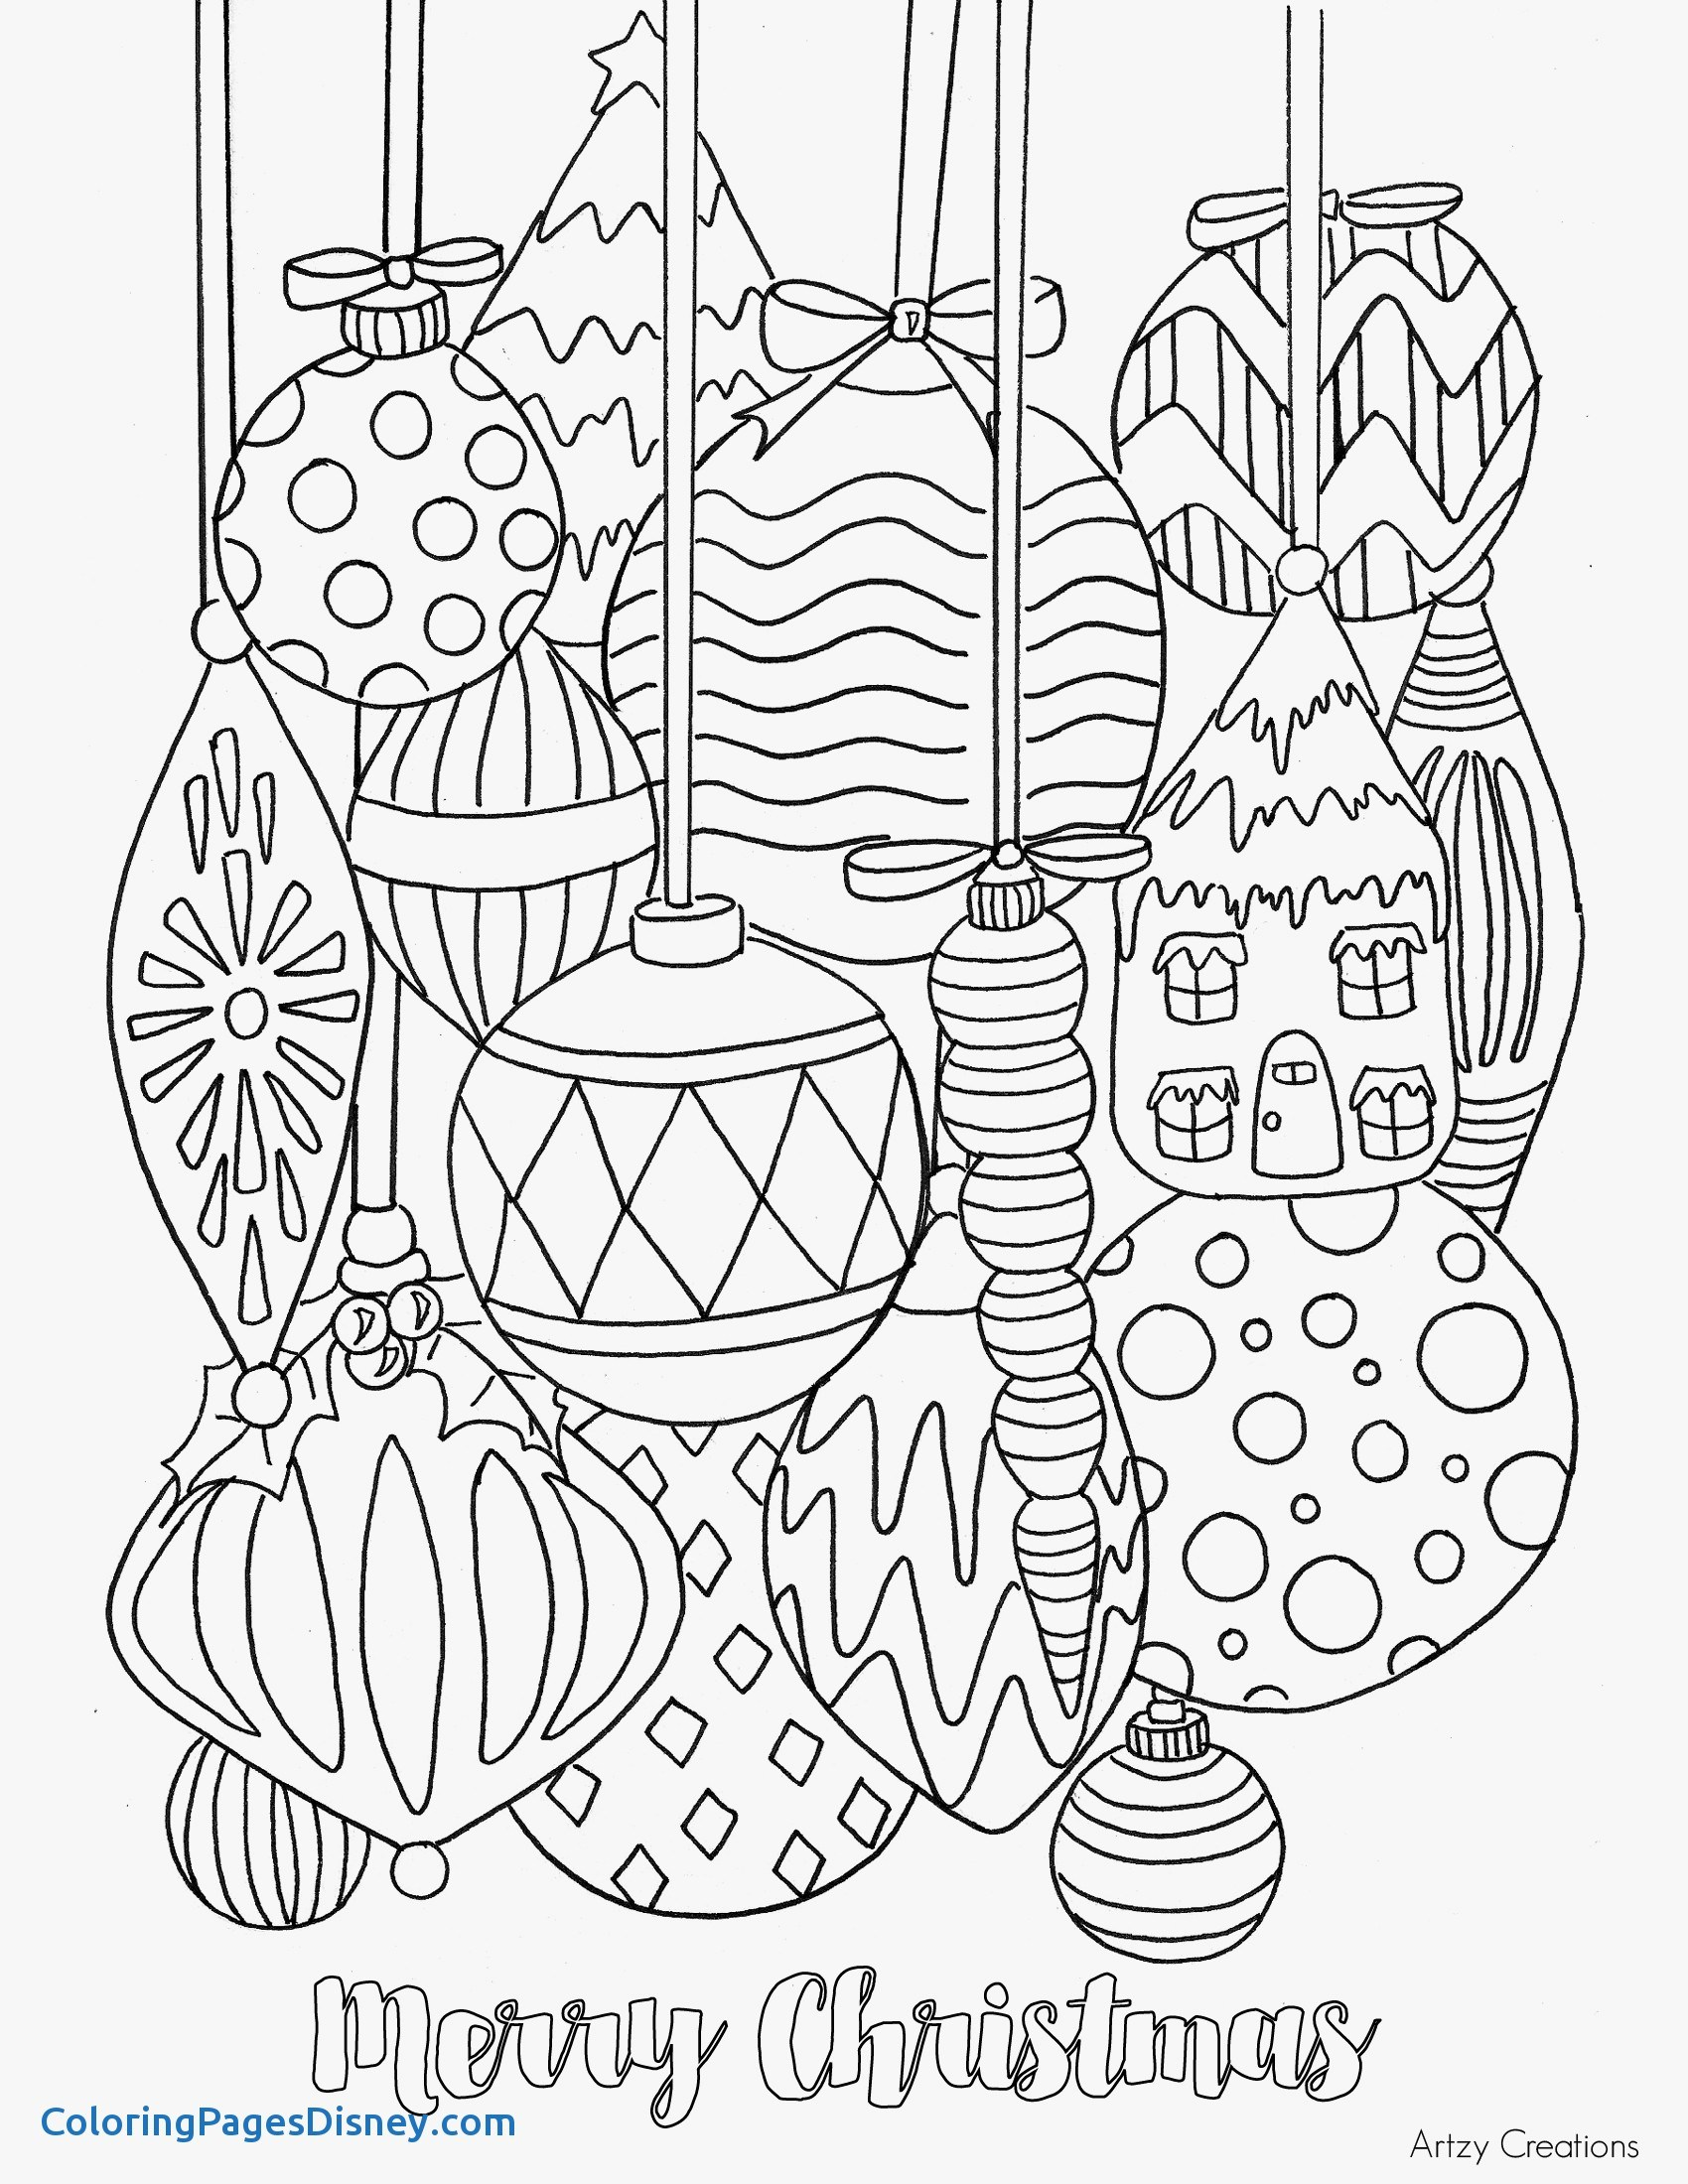 1700x2200 Jackfruit Coloring Pages Elegant Free Christmas Ornament Coloring